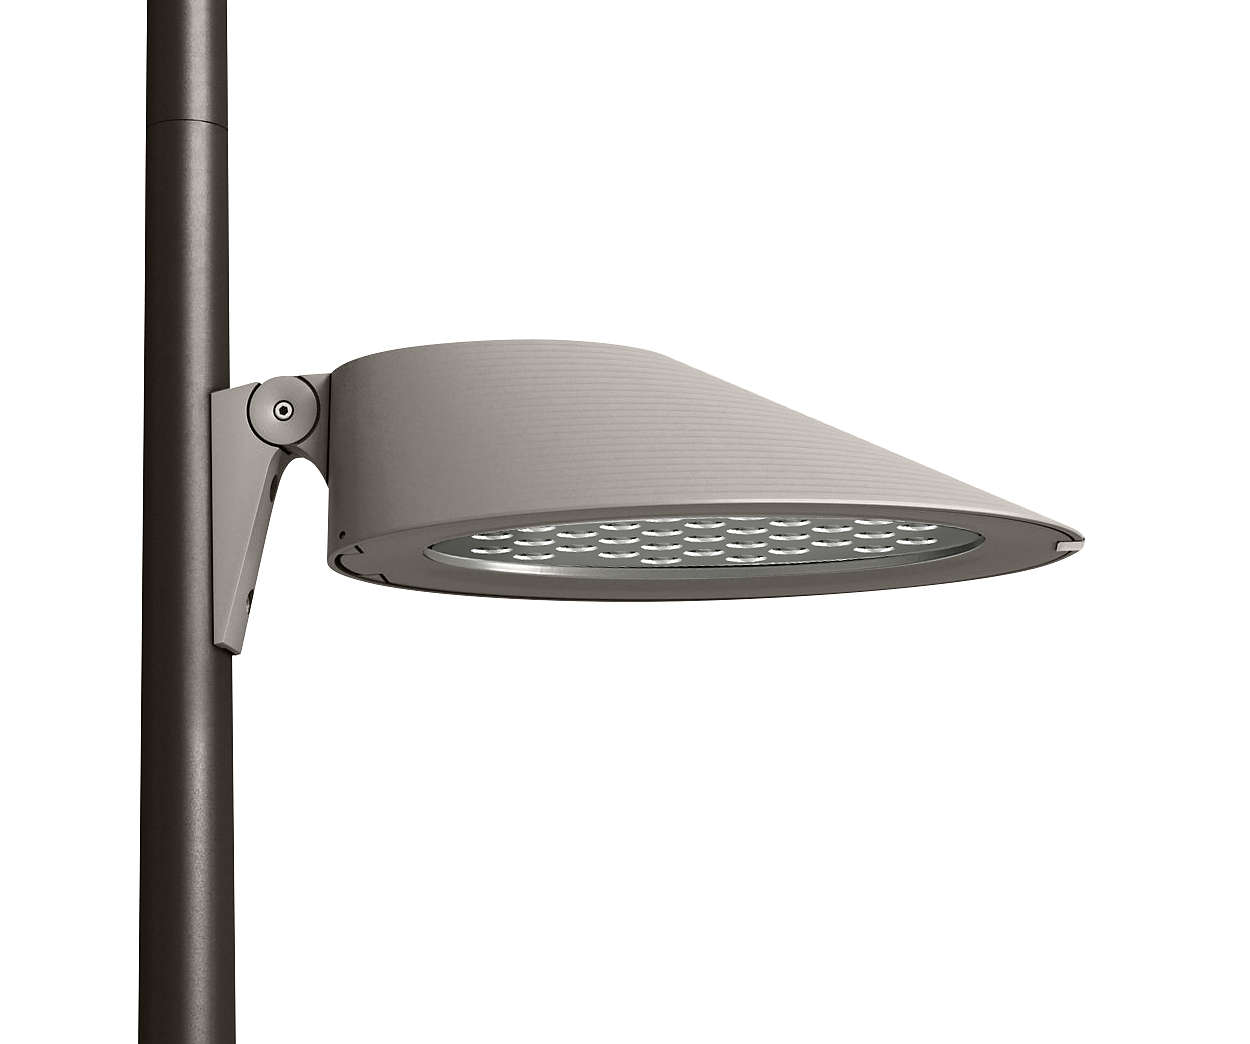 Ocean Road LED – discreet elegance and fluidity shaping contemporary urban environments